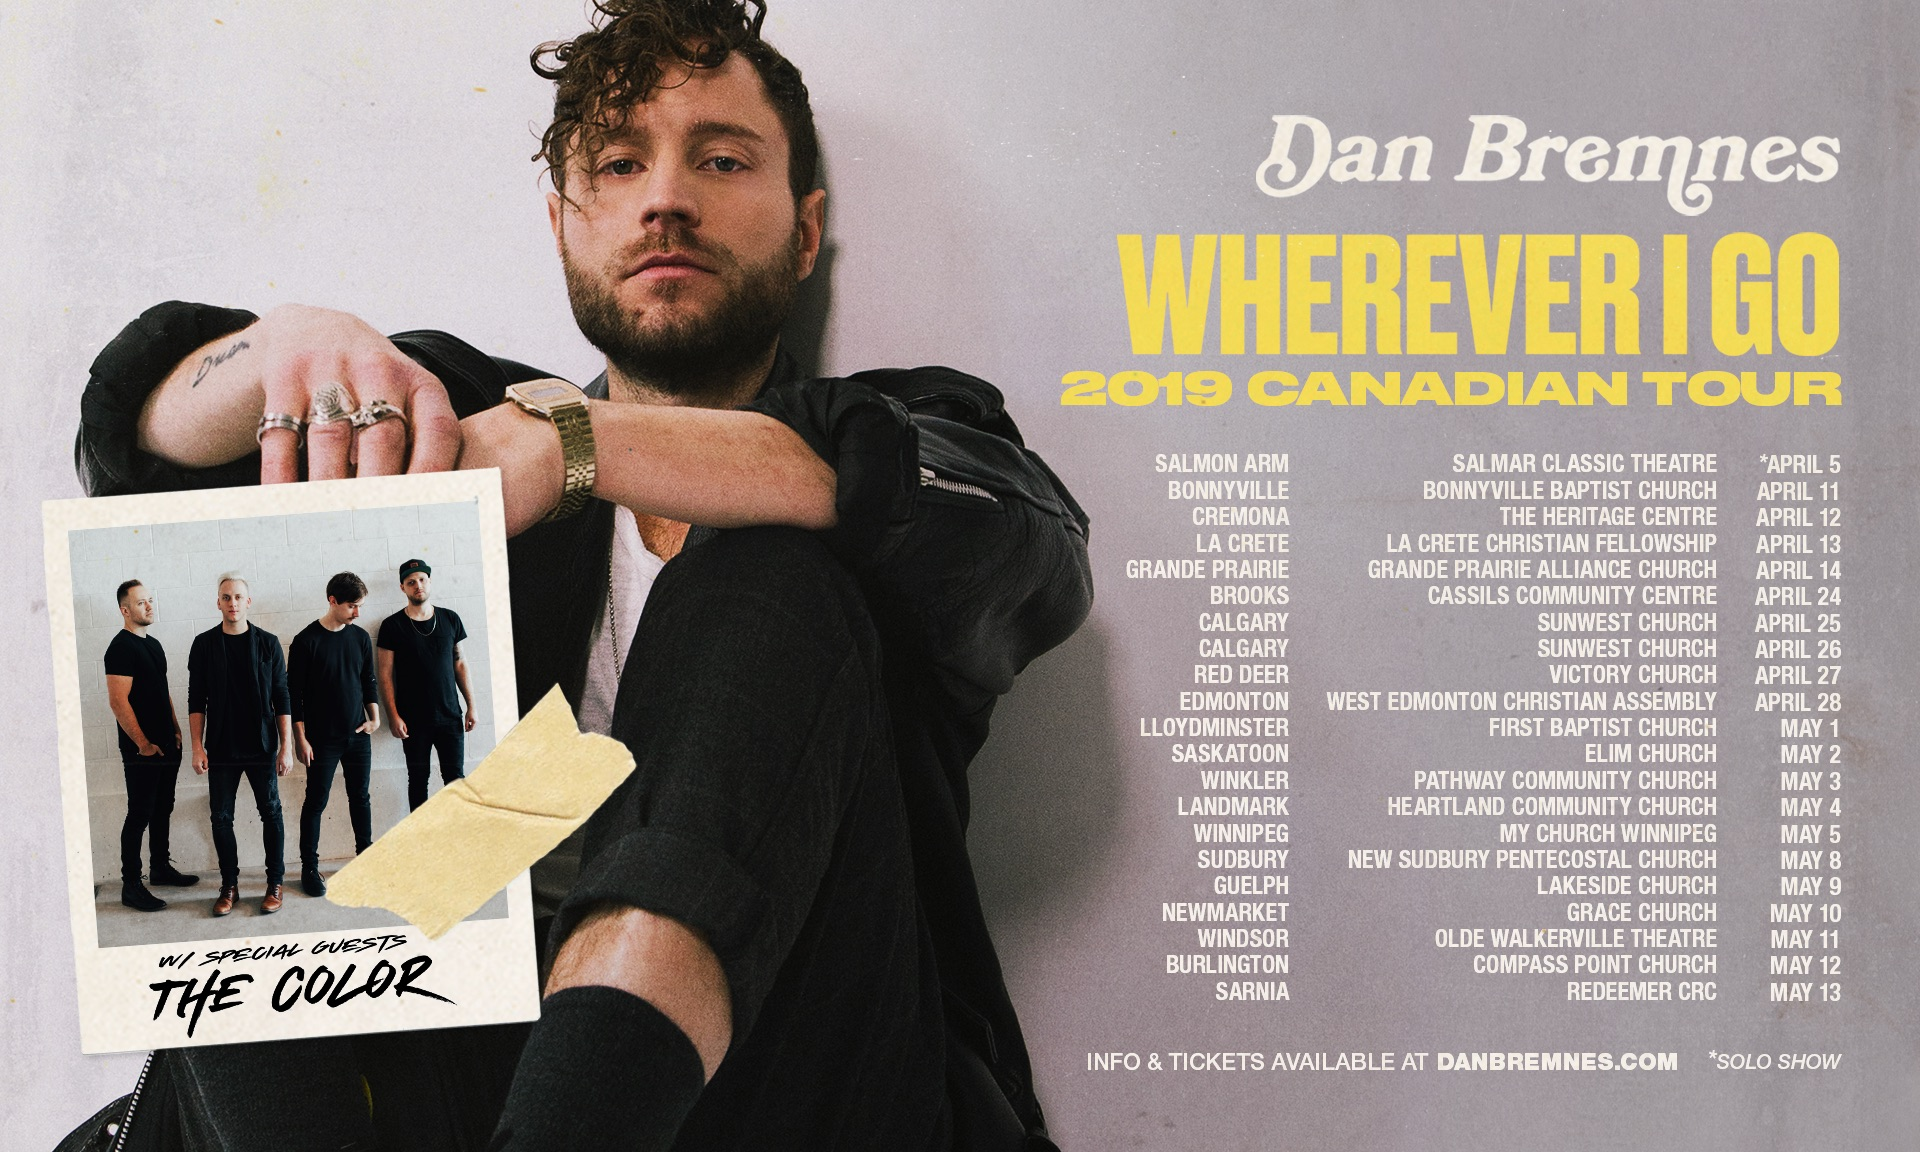 Tickets for Dan Bremnes, Wherever I Go Tour with The Color in Winkler from BuzzTix